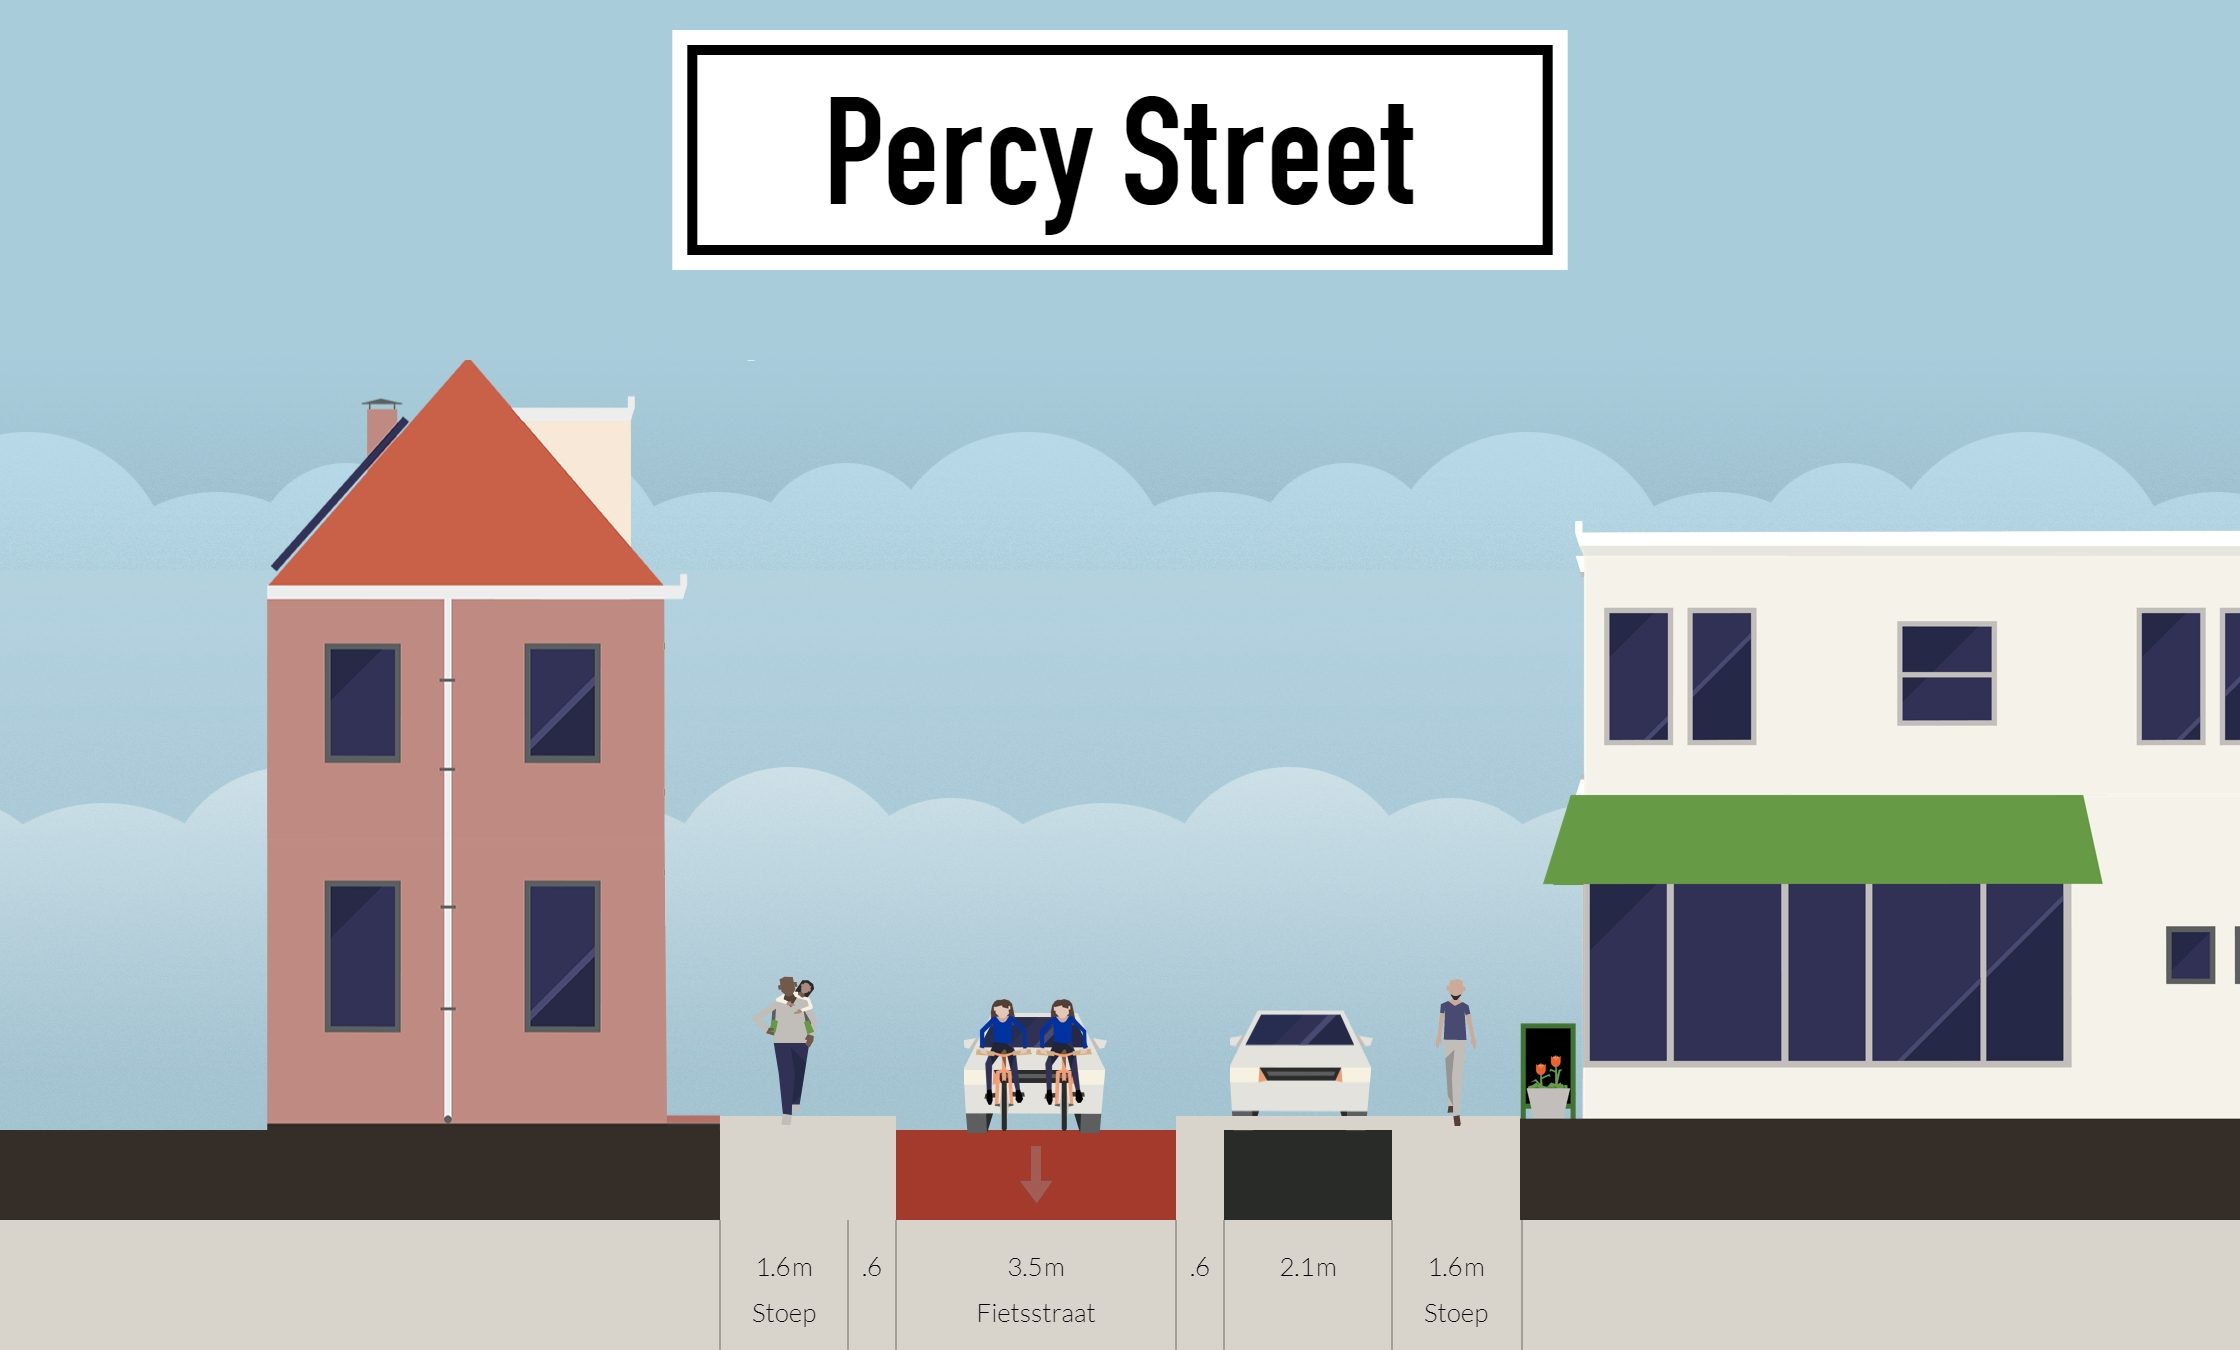 Percy St as it could look like as a Bicycle Street